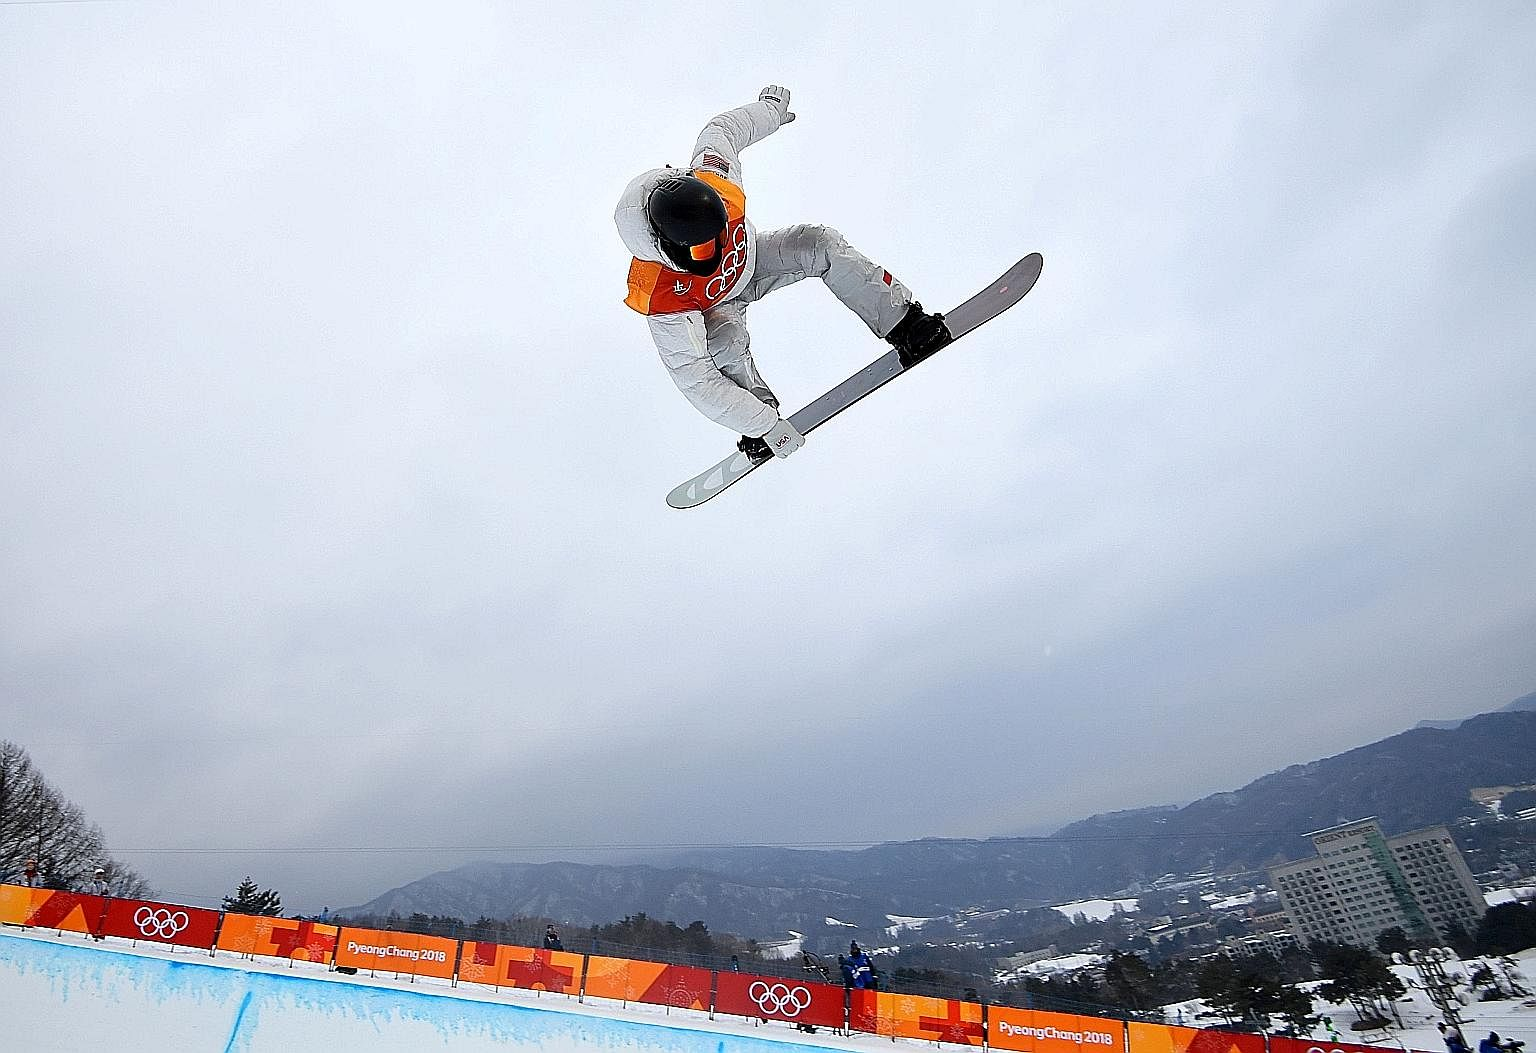 American Shaun White executing a move in the half-pipe final at Phoenix Snow Park on his way to a third Winter Olympics gold medal.